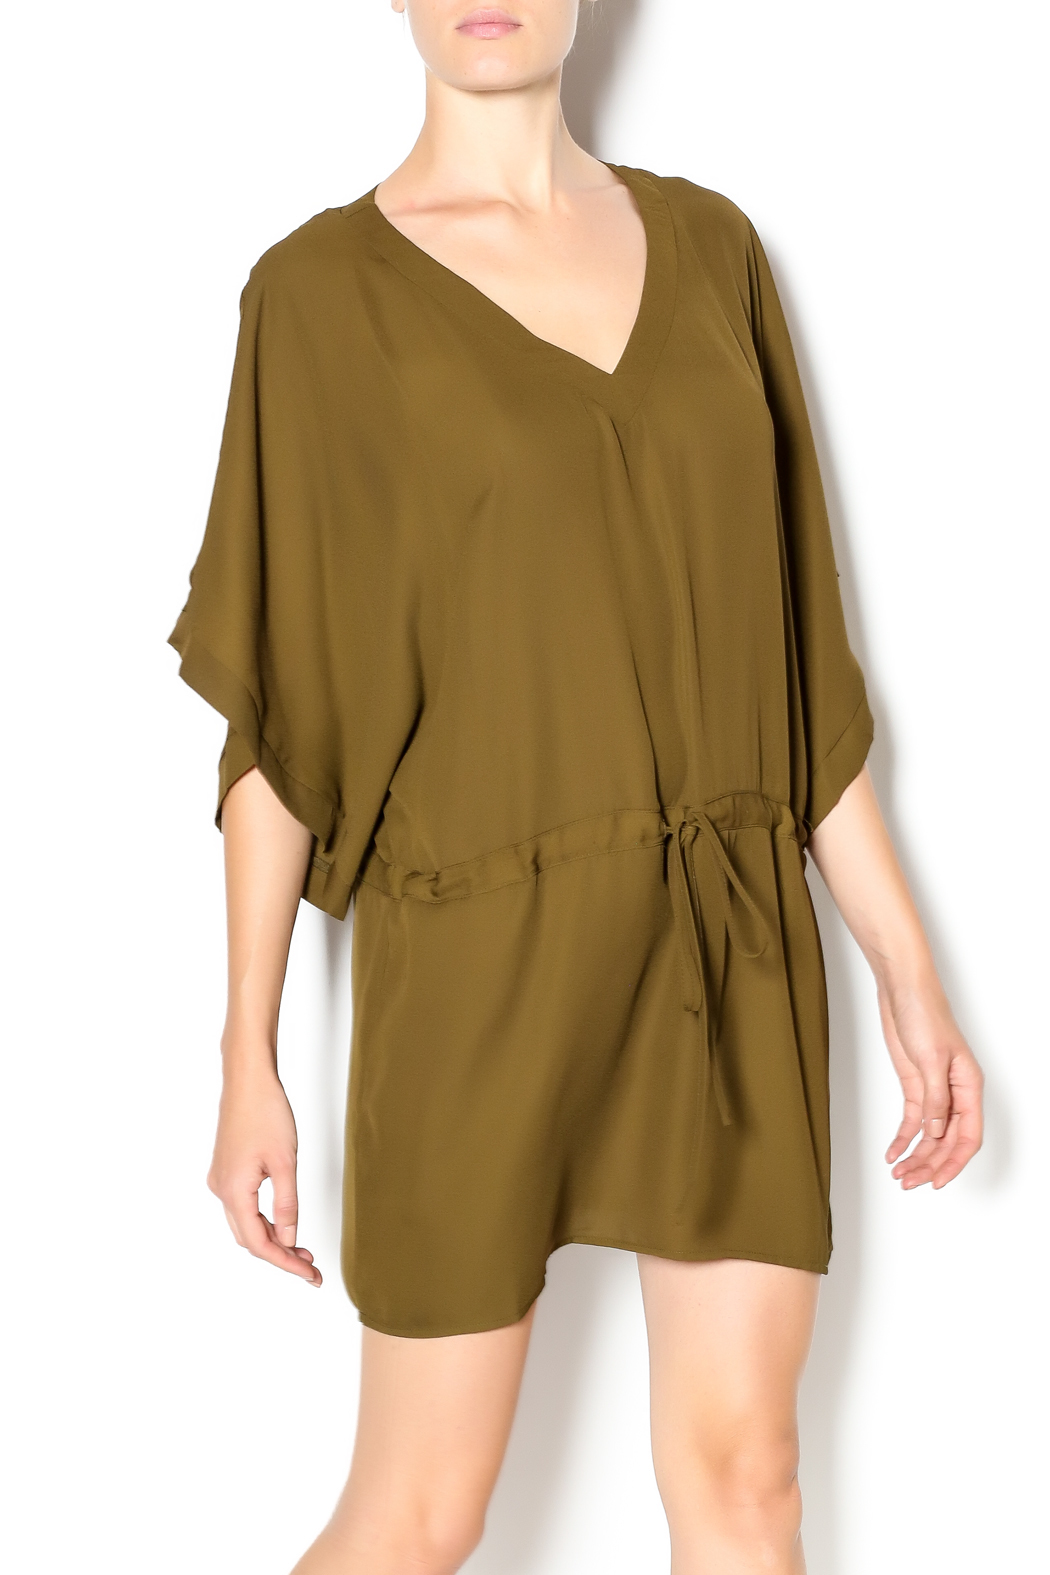 Dani Collection V Neck Olive Tunic Dress From Mississippi